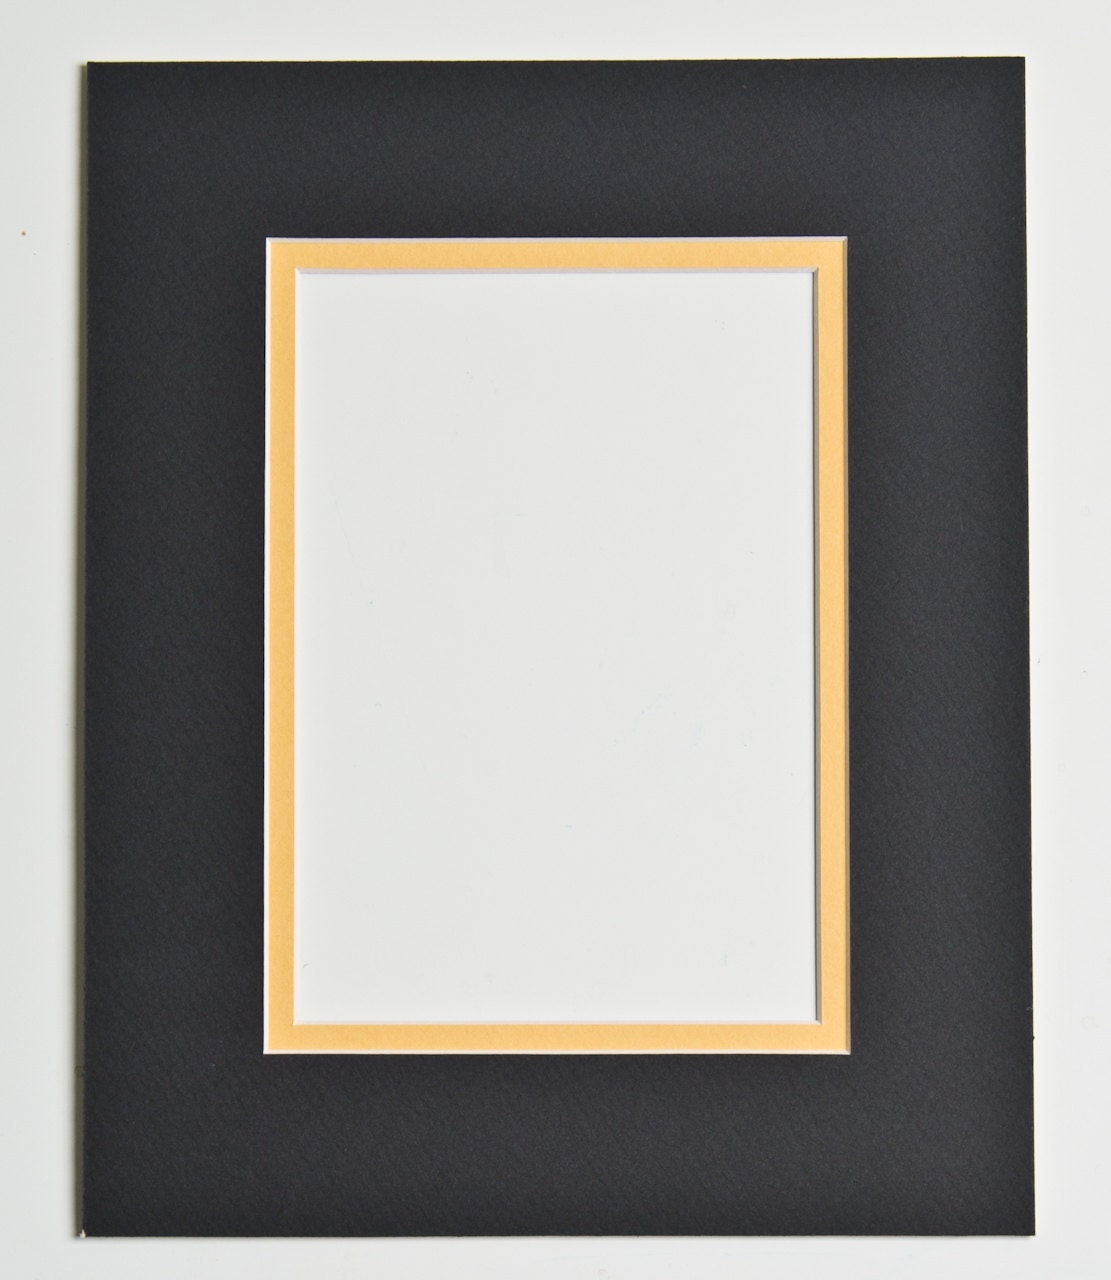 5x7 Double Mat Black And Yellow For 8x10 Frame By Ohiohiker